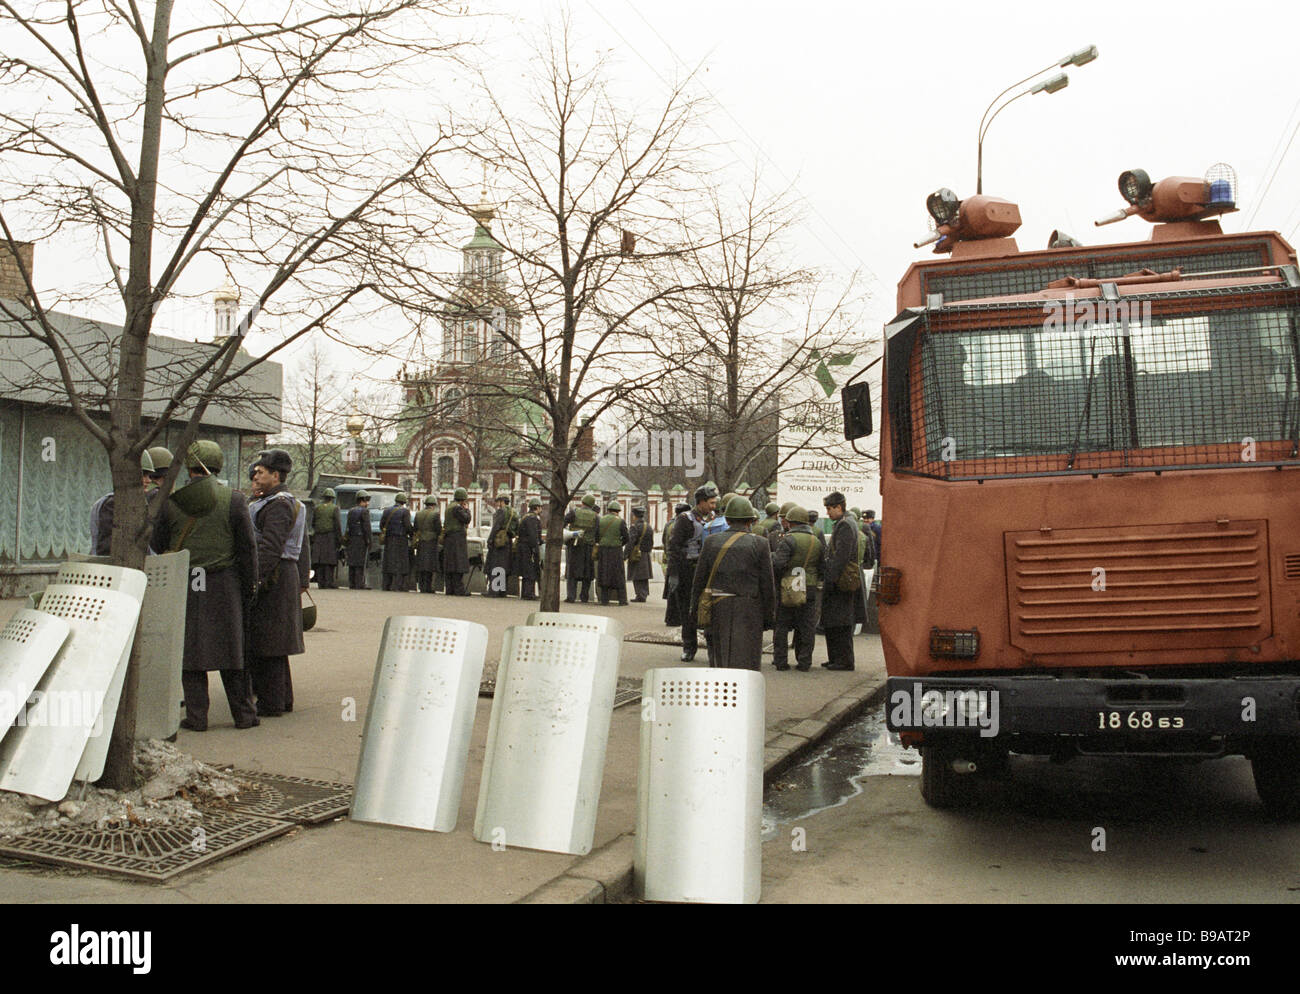 Police detachments with special equipment and shields preparing for maintaining order during the celebration of - Stock Image